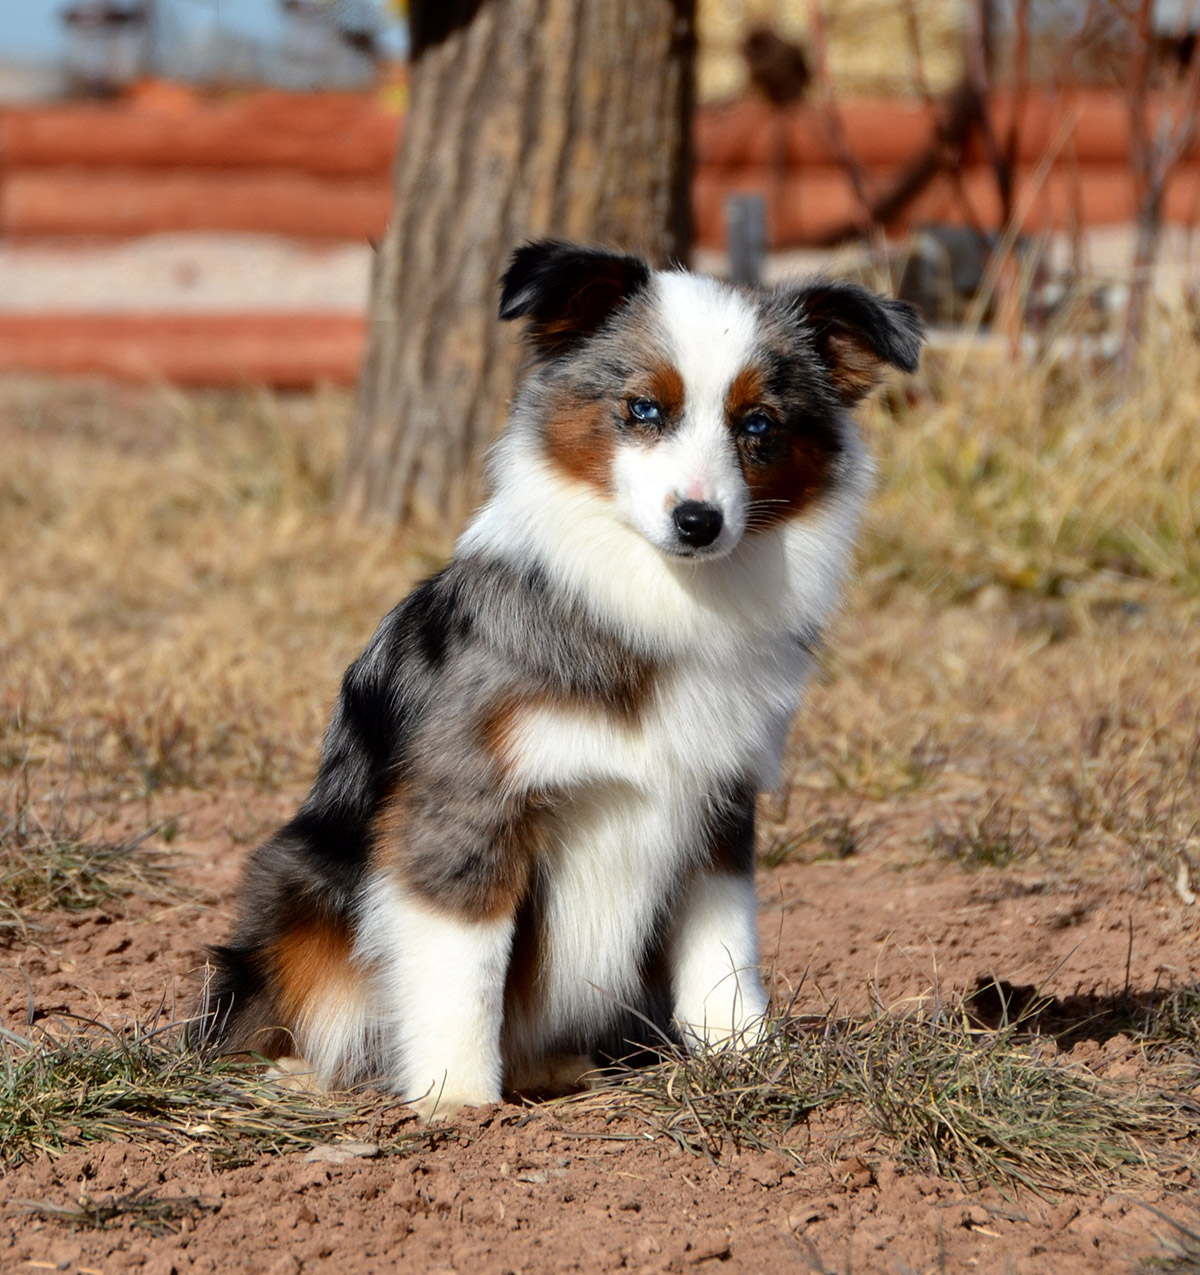 Grande About Aussies Color Country Aussies Does Australian Shepherds Shed Do Australian Shepherds Shed Bad bark post Do Australian Shepherds Shed